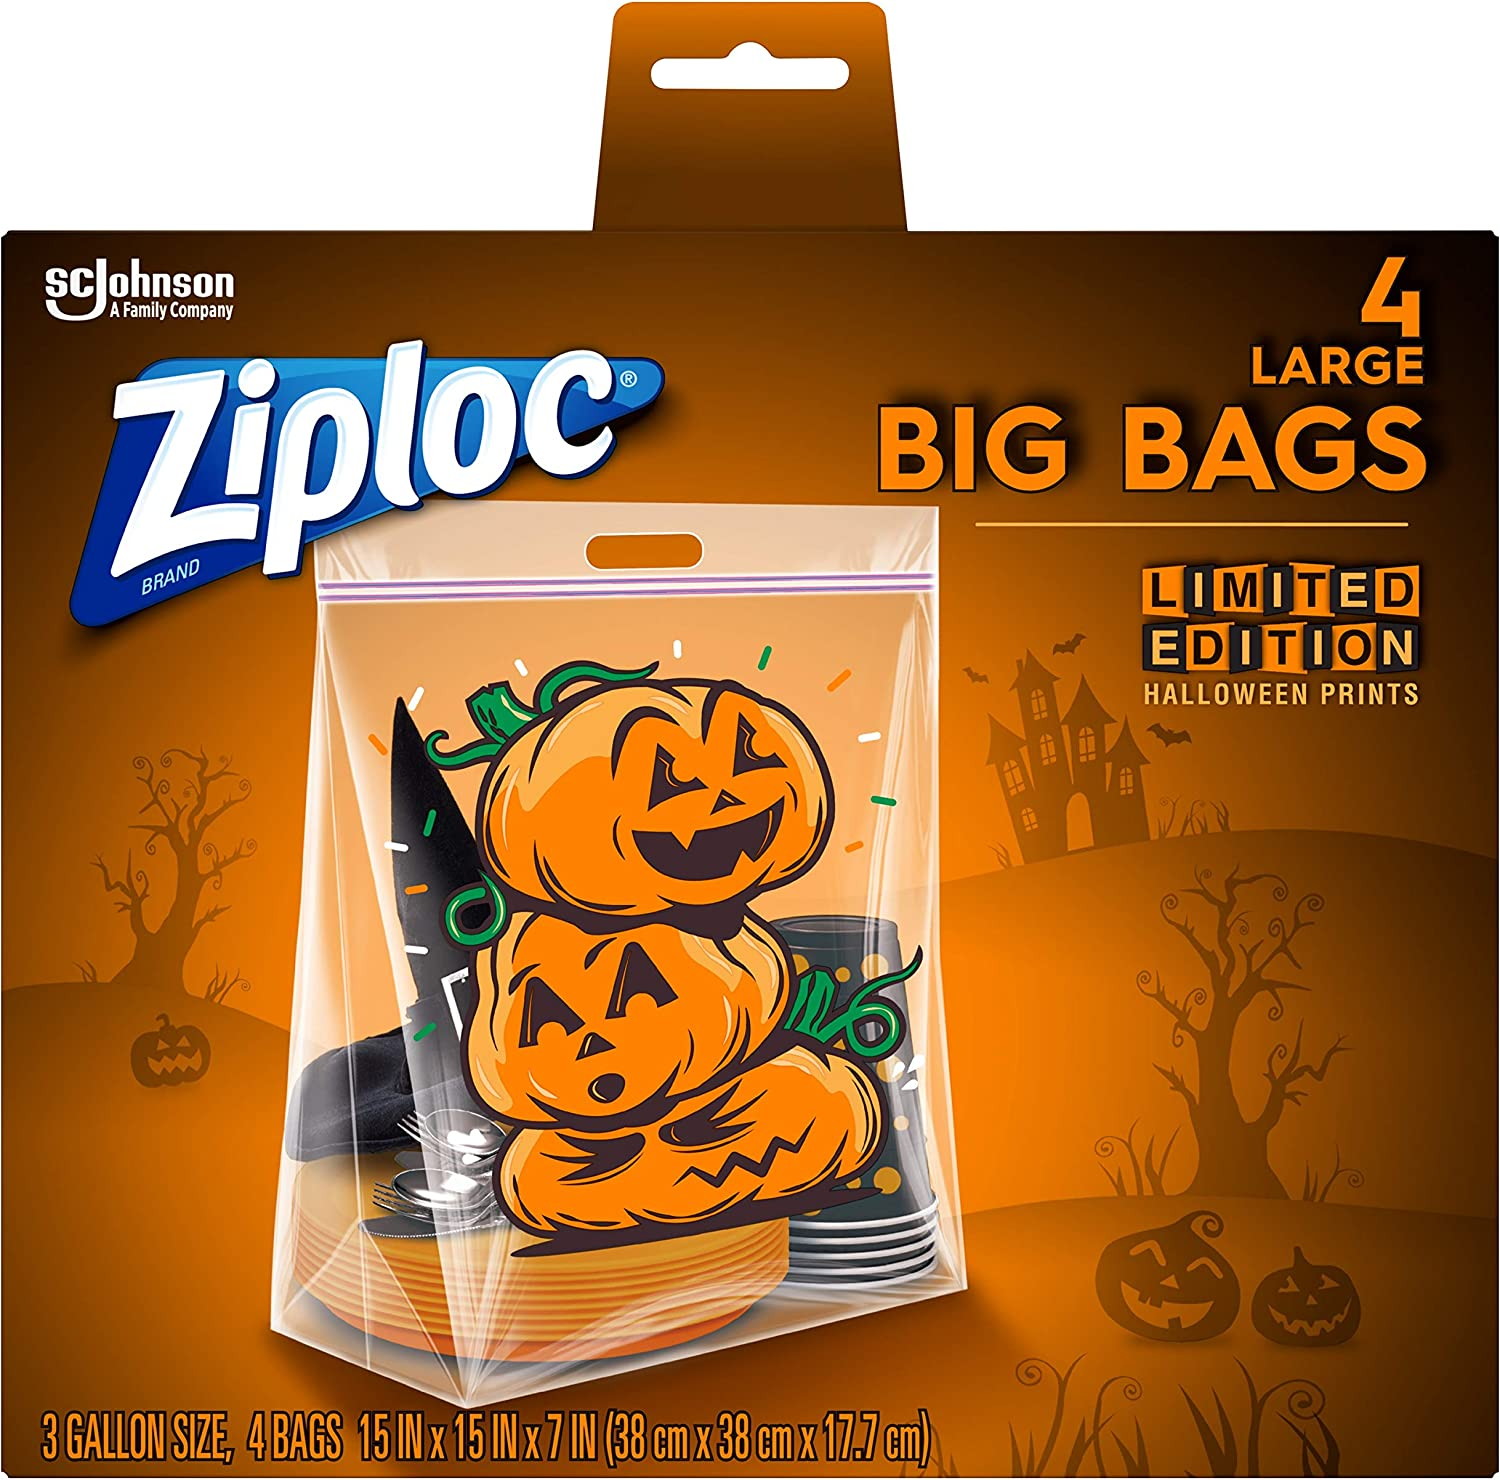 Ziploc Storage Bags, Double Zipper Seal & Expandable Bottom, Large, 4 Count